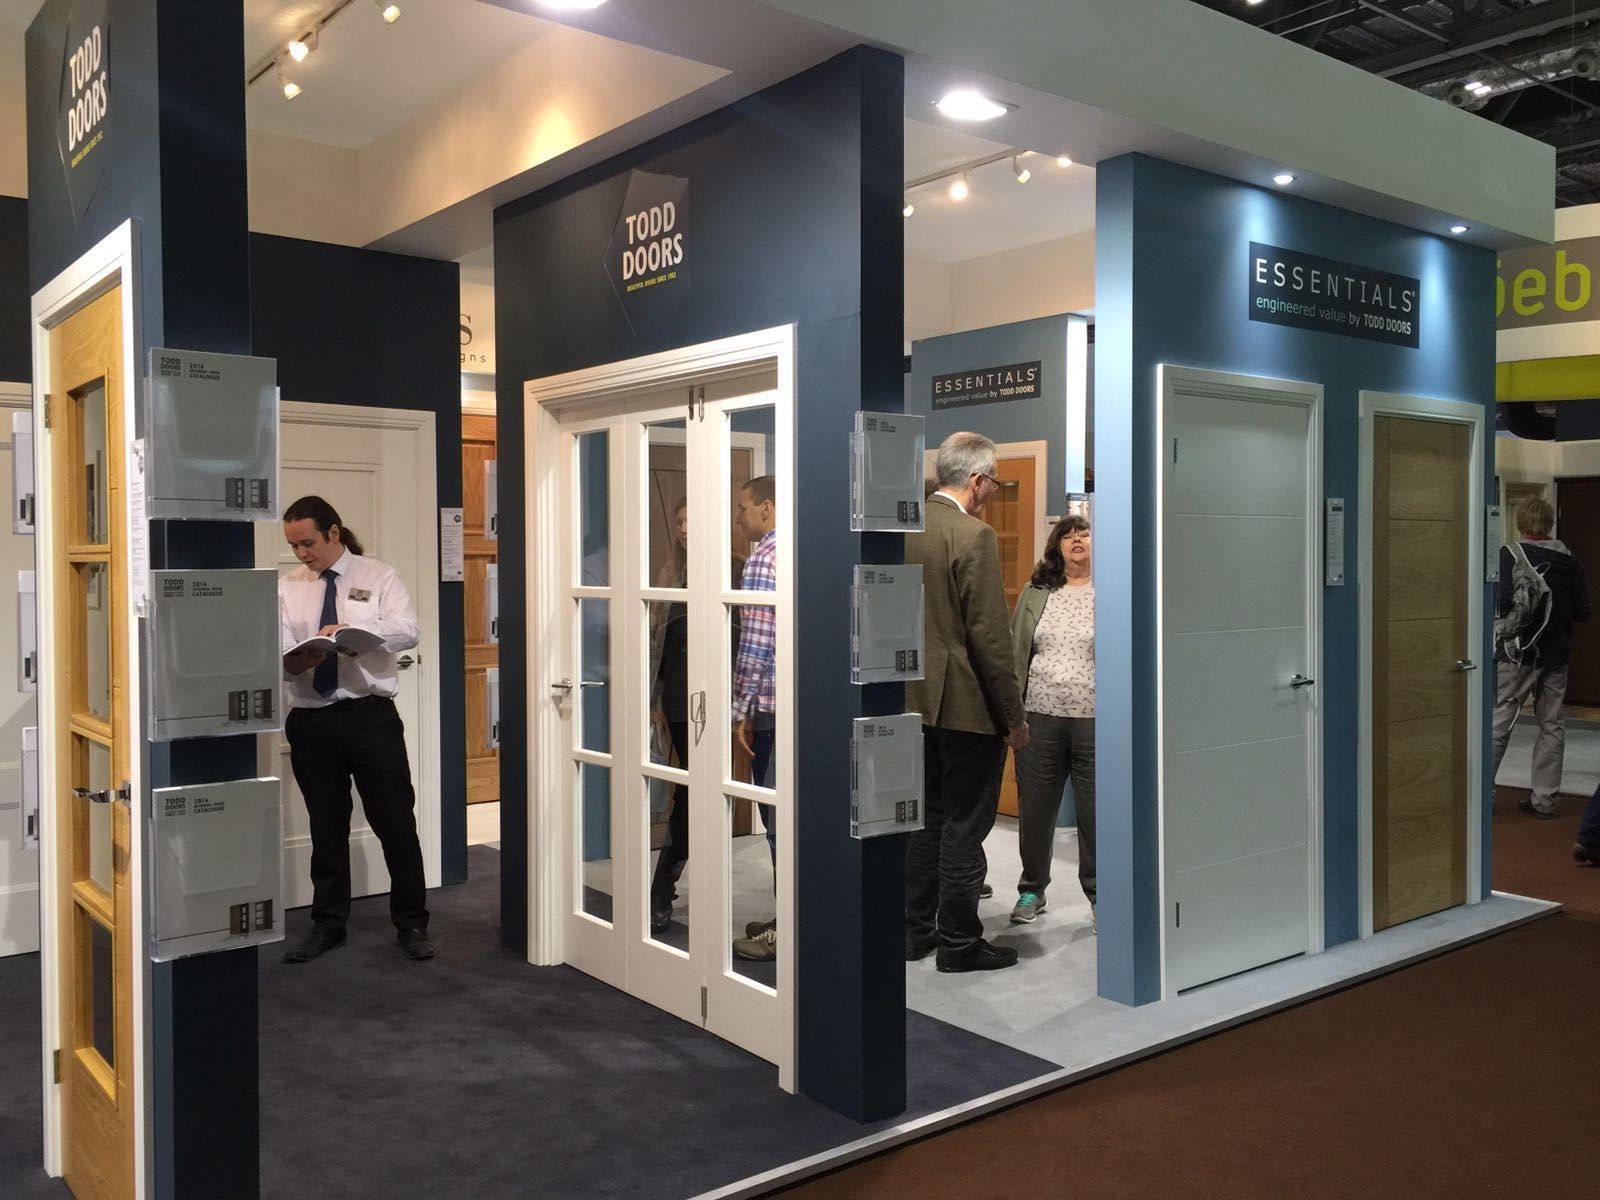 Todd Doors at the Grand Designs Live show in London & Todd Doors at the Grand Designs Live show in London | showroom ...